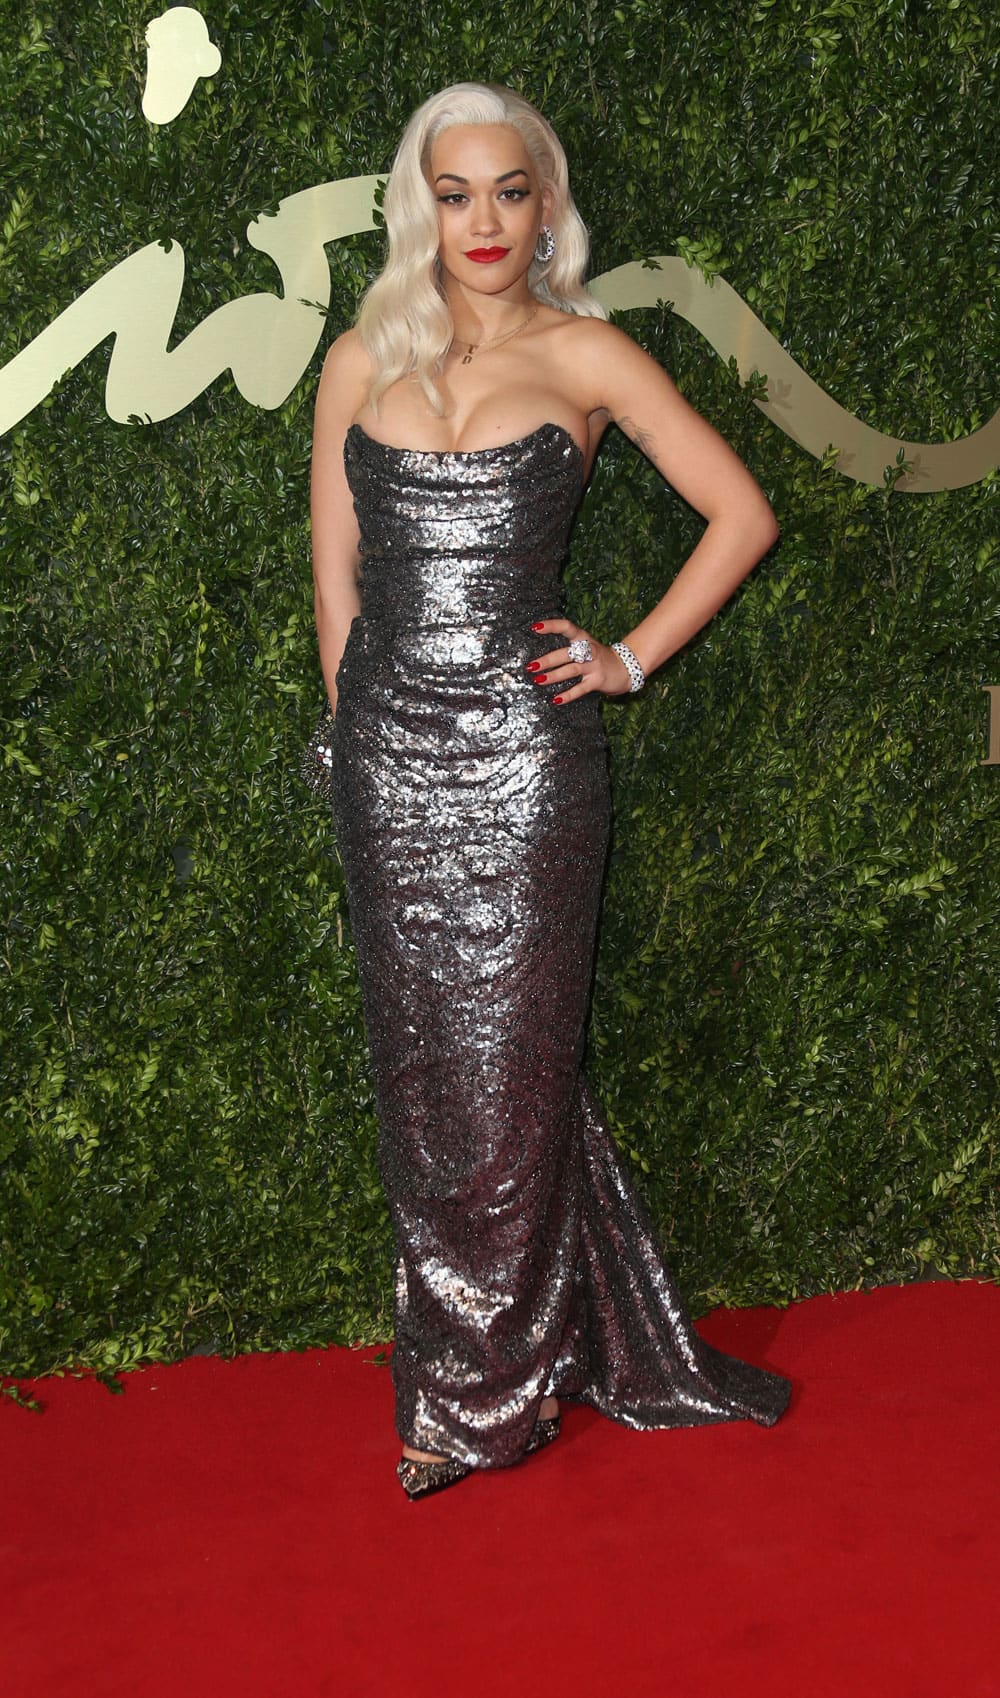 British singer Rita Ora poses for photographers as she arrives for the London Coliseum for the 2013 British Fashion Awards.